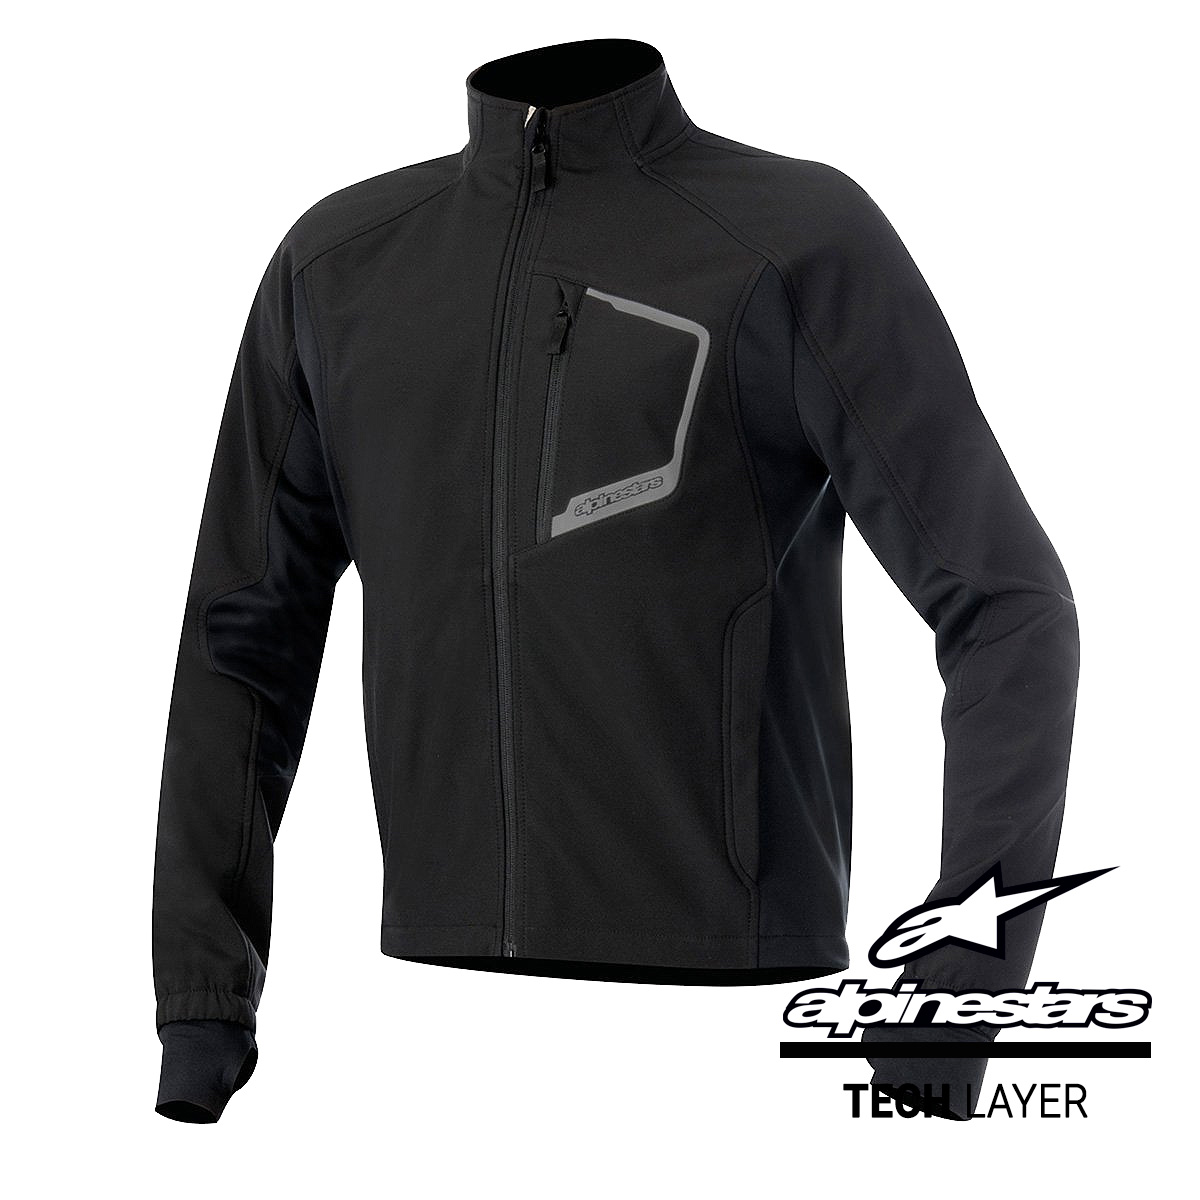 Alpinestars Tech Layer Windbreaker Top winter motorcycle clothing accessories